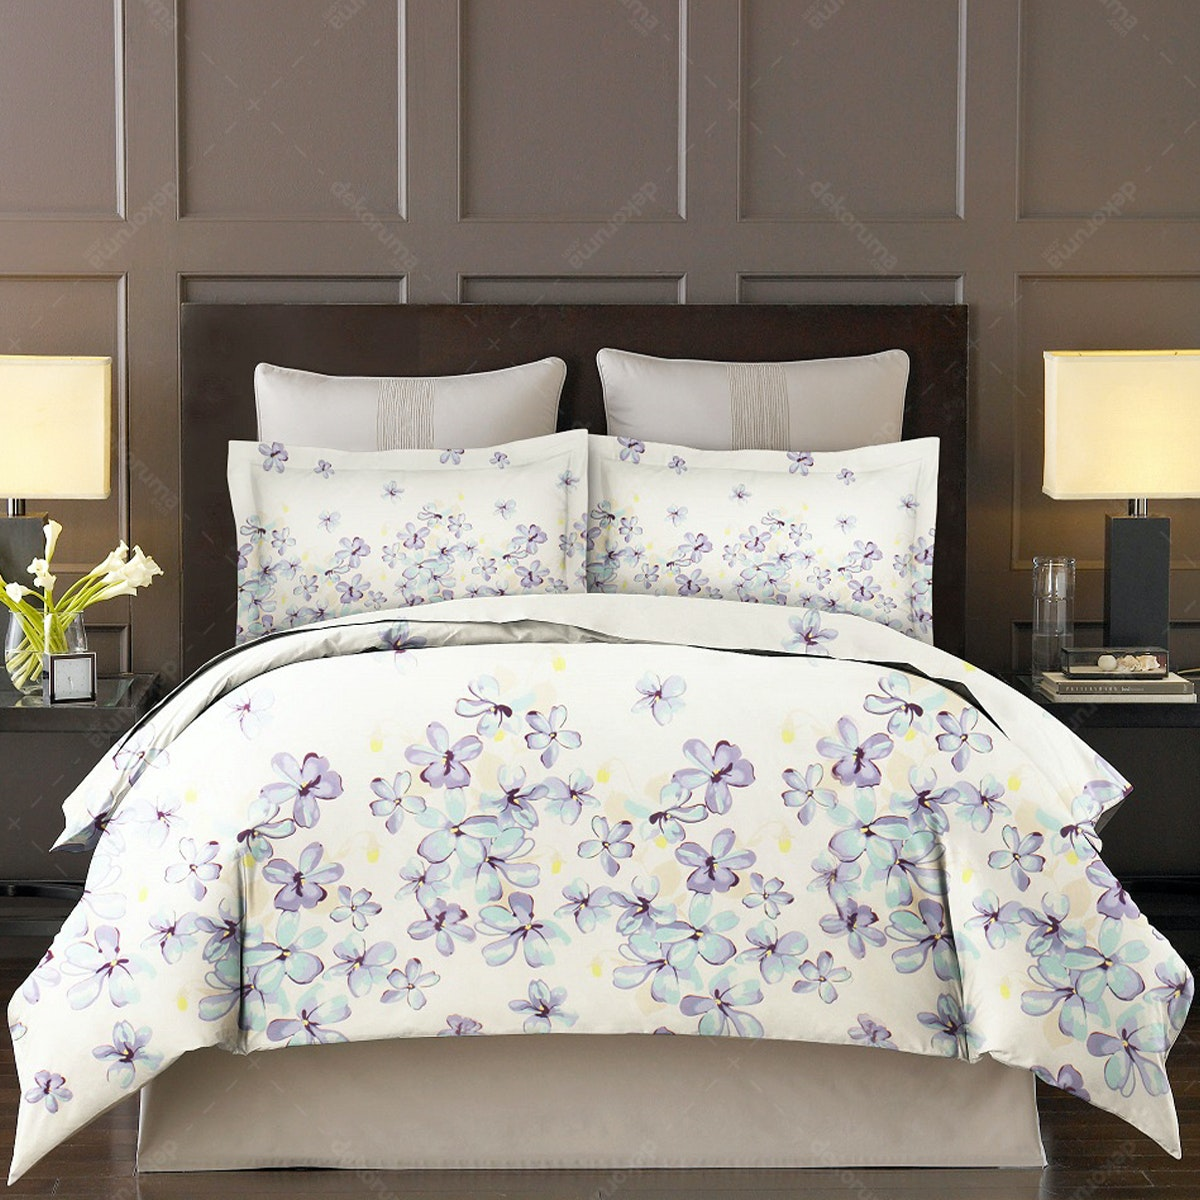 King Rabbit Set Sprei Jasmin Toska 160x200x40cm